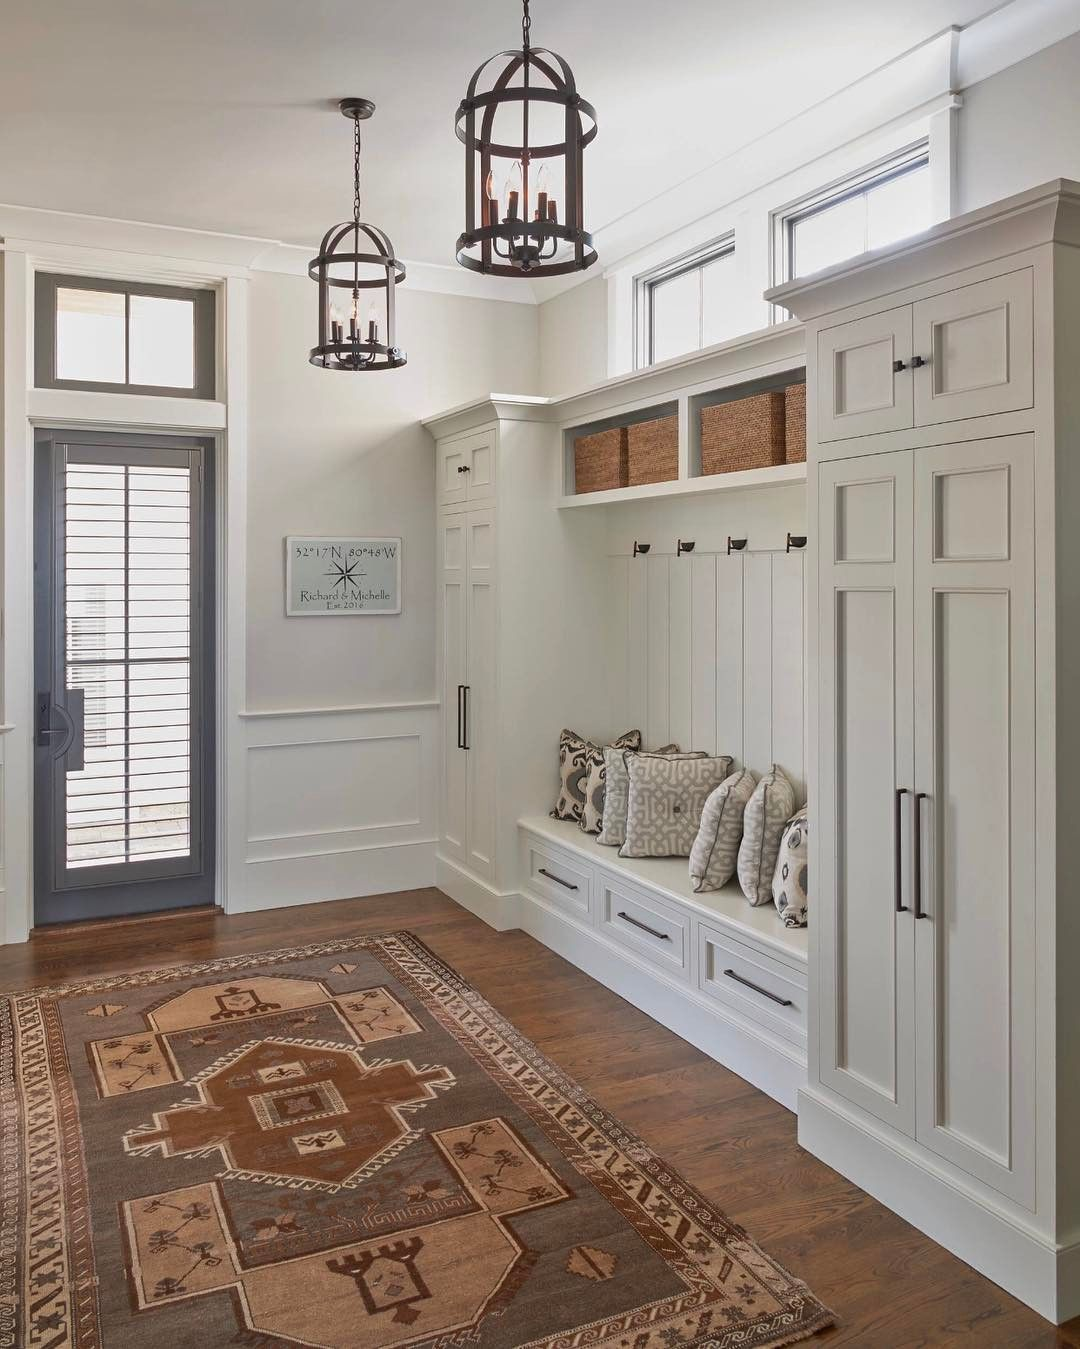 This entryway only with cubbies below bench for shoe for Mudroom layout